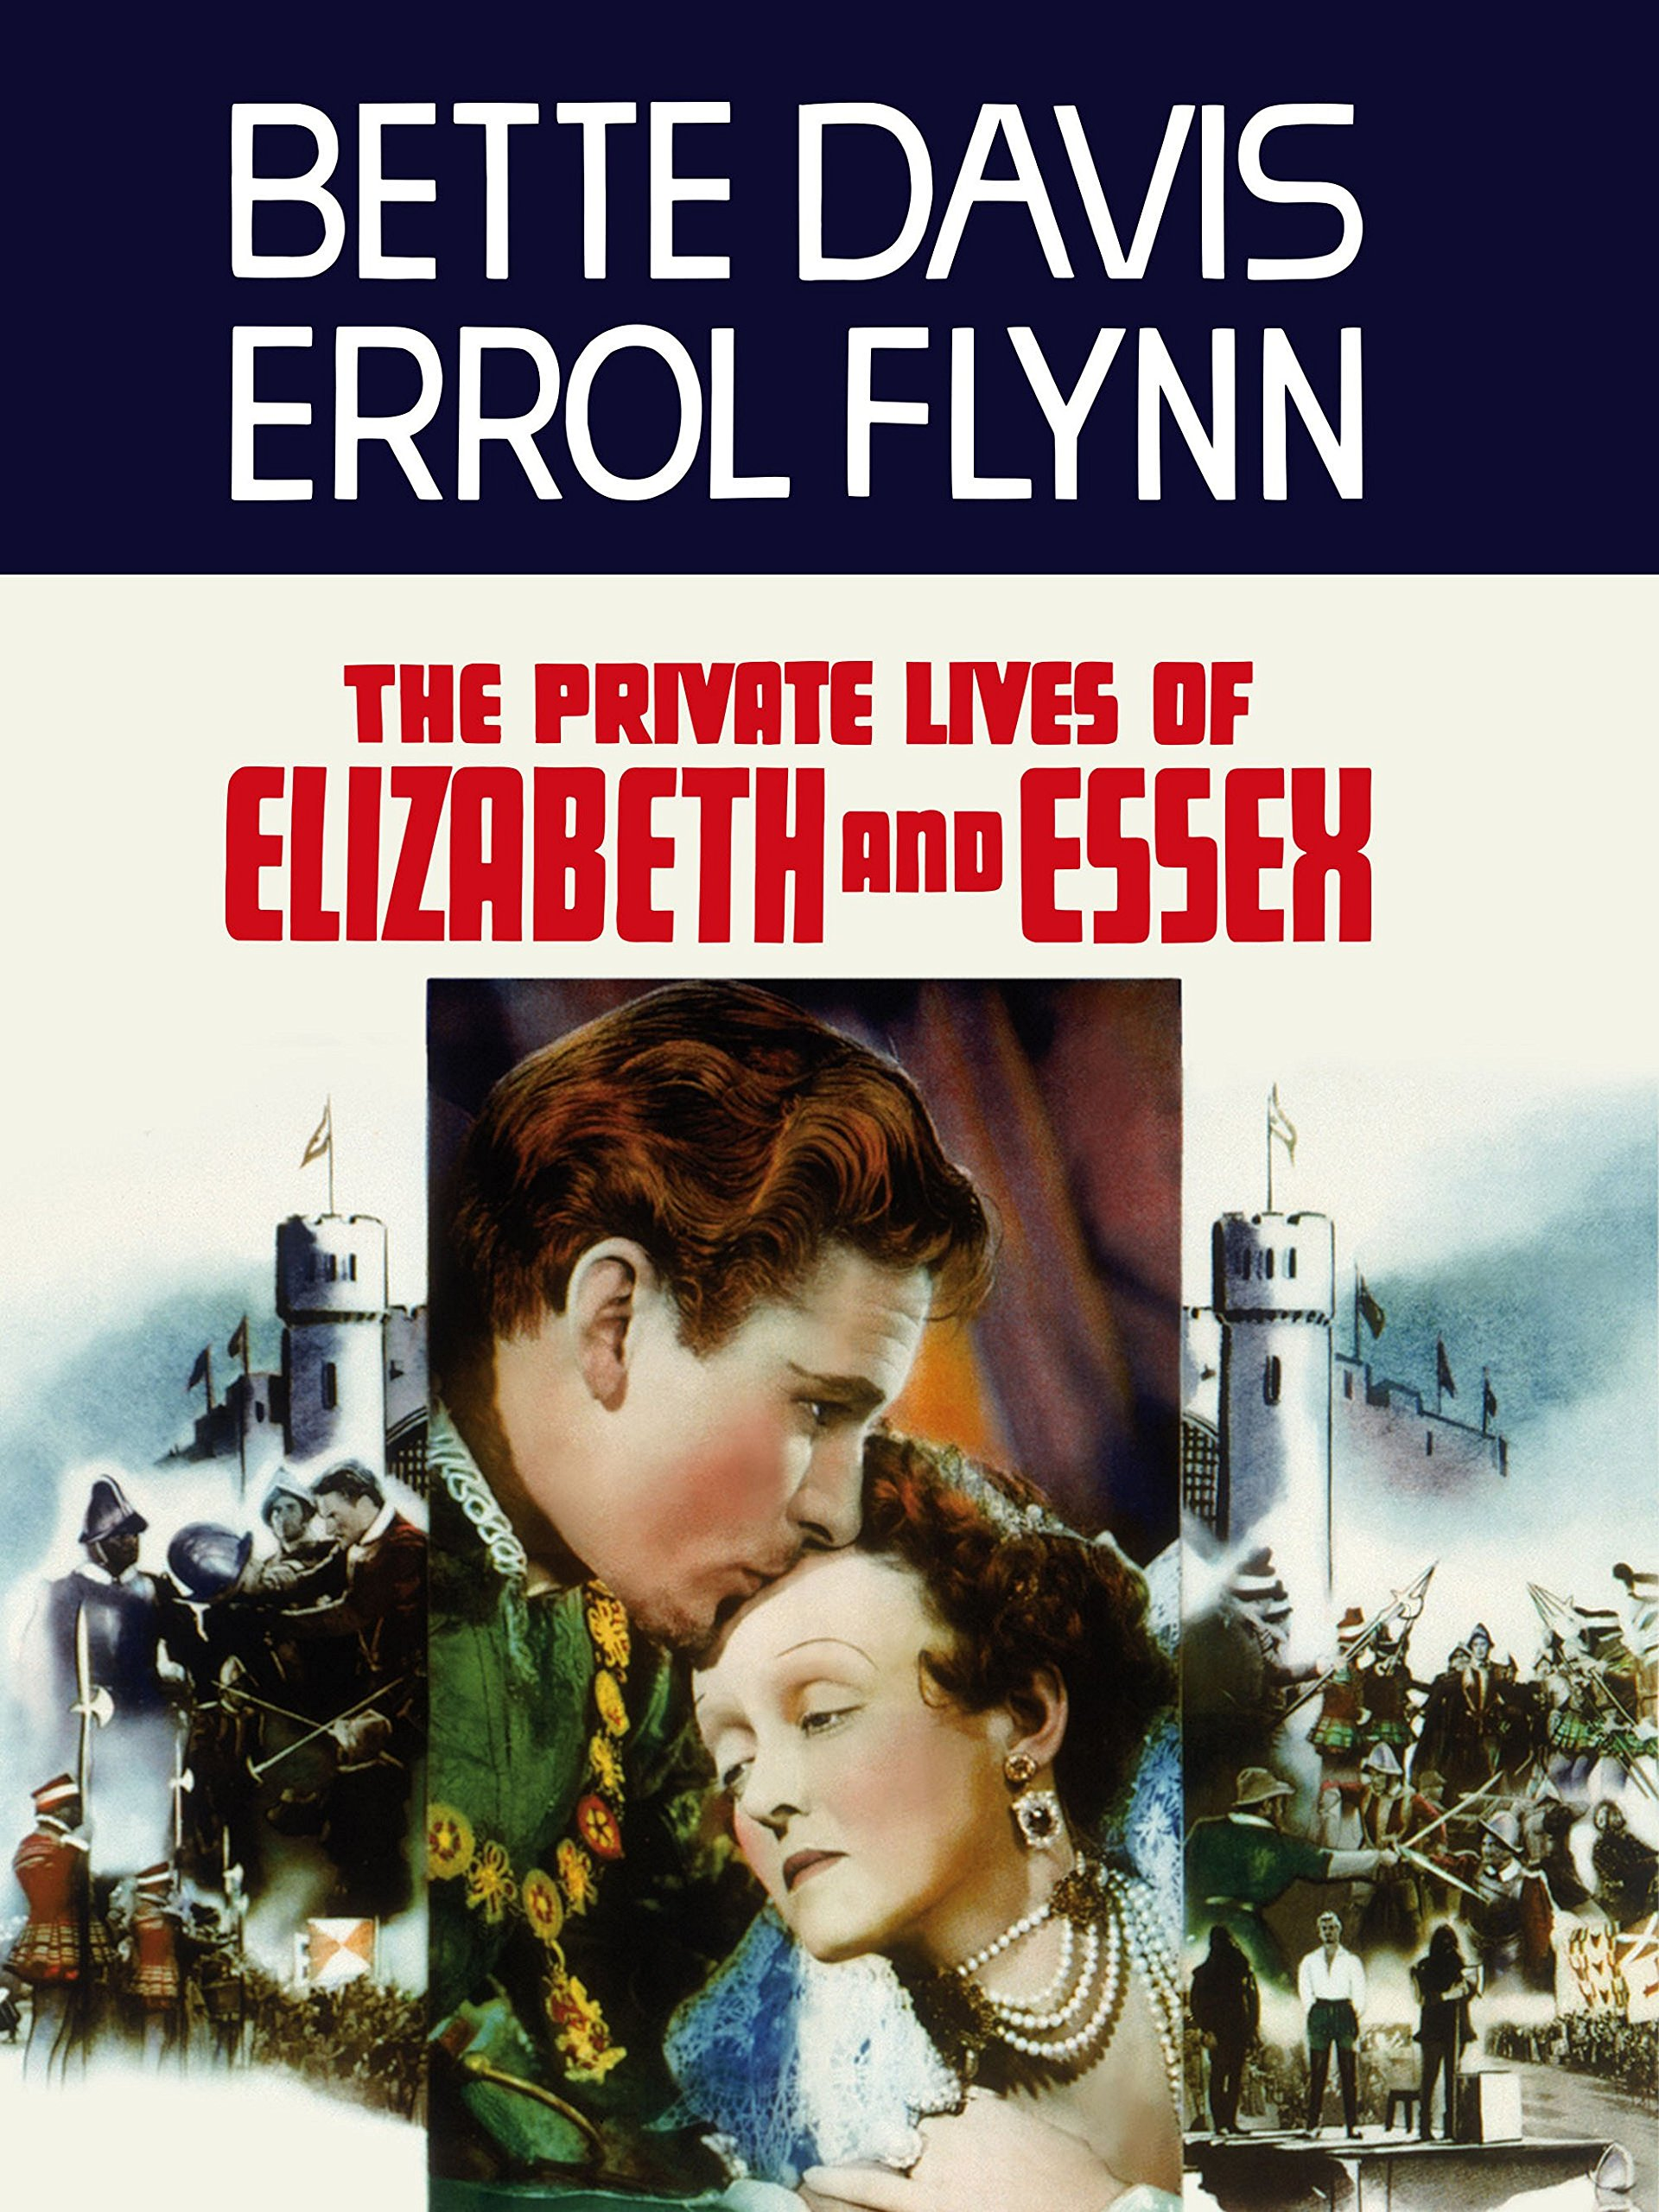 the private lives of elizabeth and essex full movie online